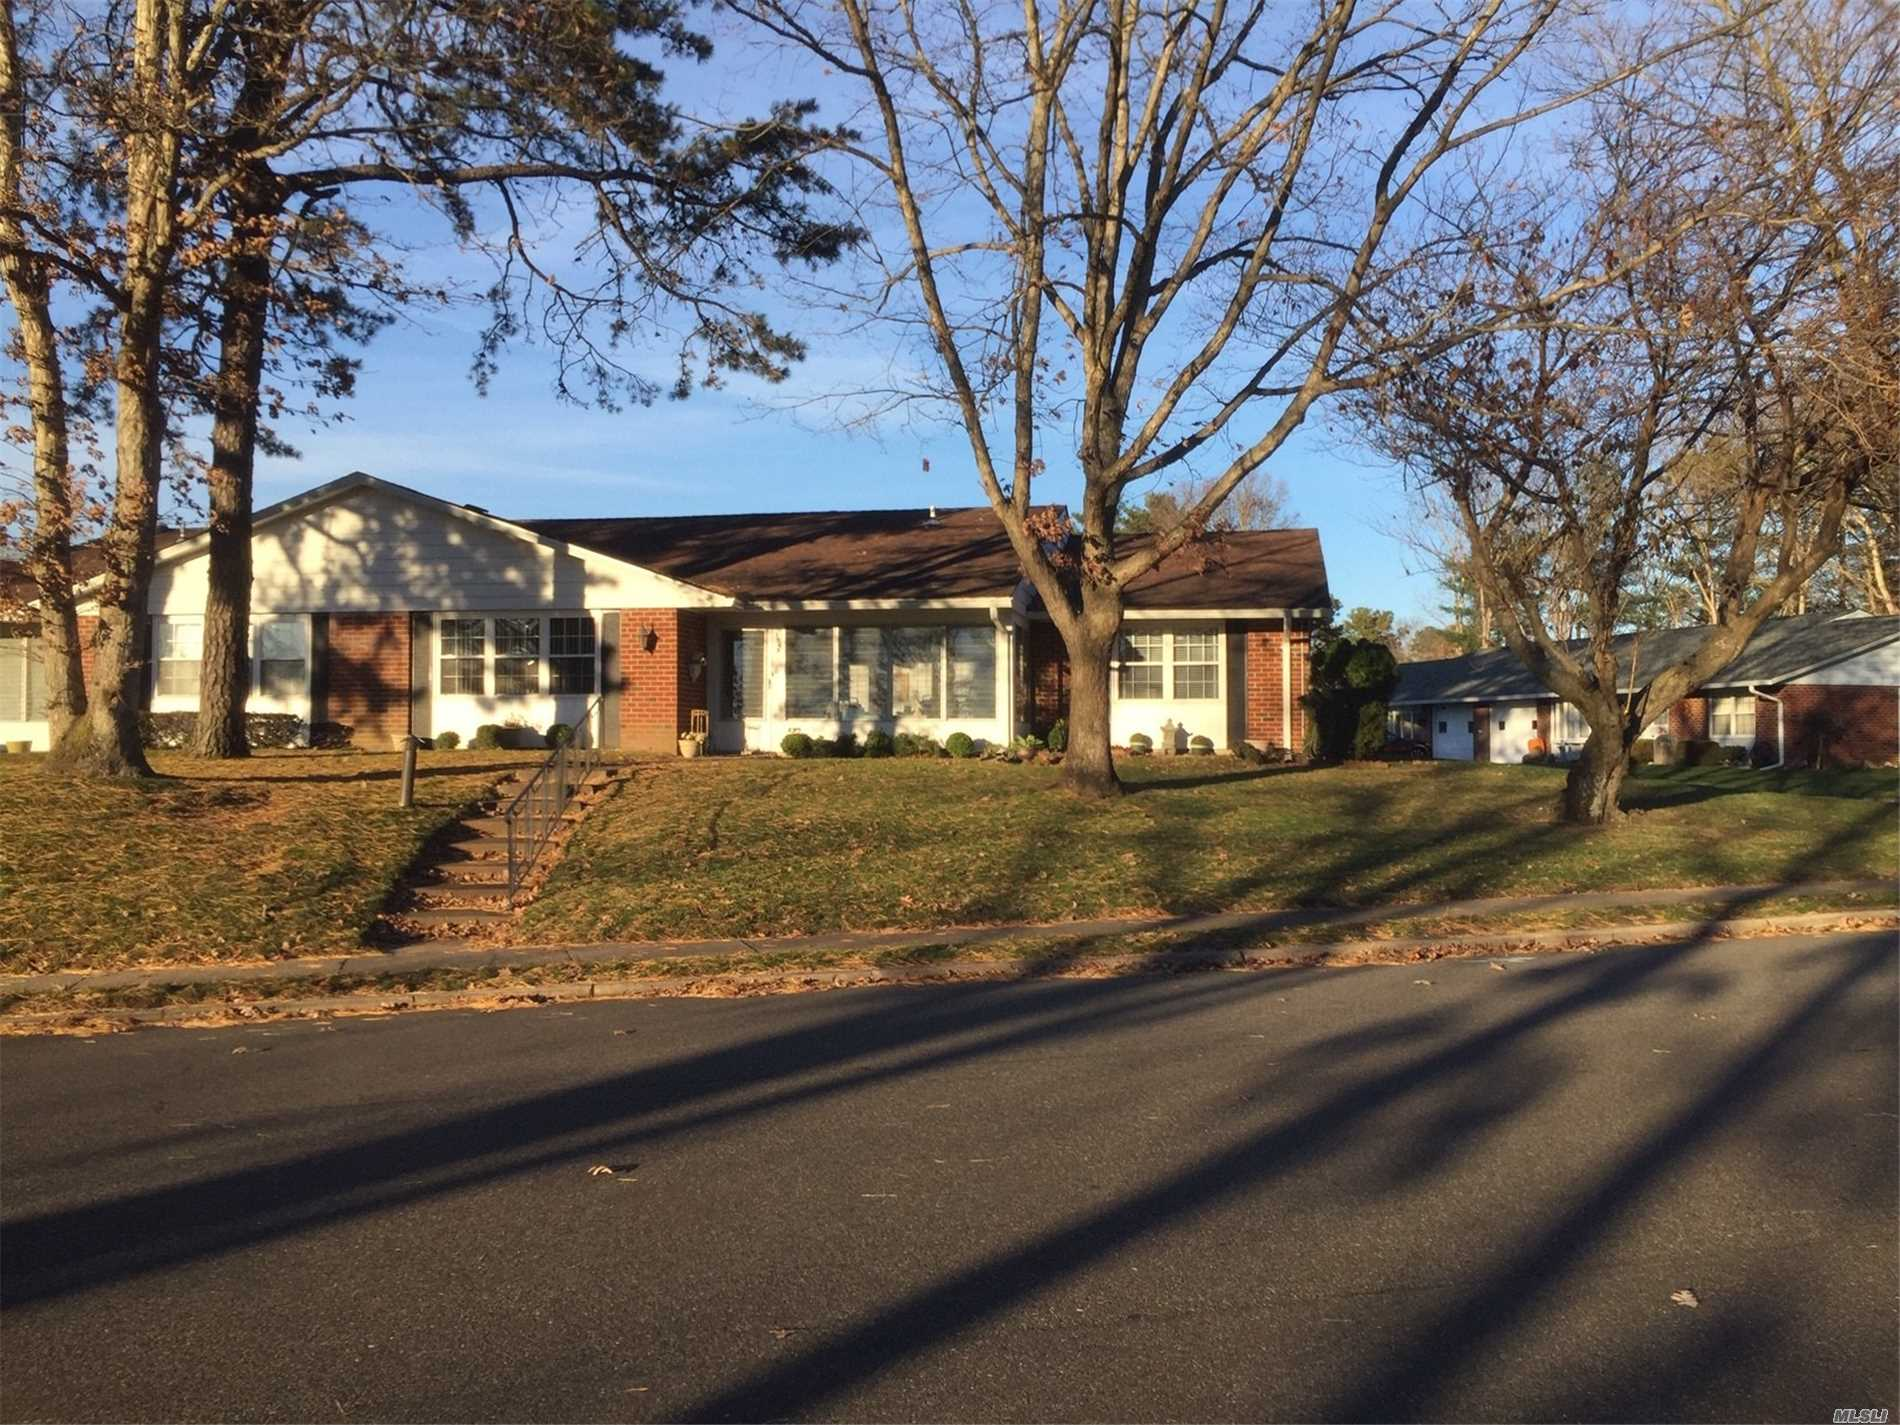 Big, Beautiful Corner Regency. Great Location With Extra Long Driveway That Parks Two Cars Plus Attached Garage And Lots Of Street Parking. 2 Bedroom, 2 Bath, Kitchen With Breakfast Bar Opens To Formal Dining Room. Living Room With Electric Fireplace And High Hats. South Facing Heated Sunroom. Country Club Amenities Include A 9 -Hole Executive Golf Course, Swimming Pool, Fitness Center, Bocce, Billiards, Dinner Dances, Community Lectures And Much More!